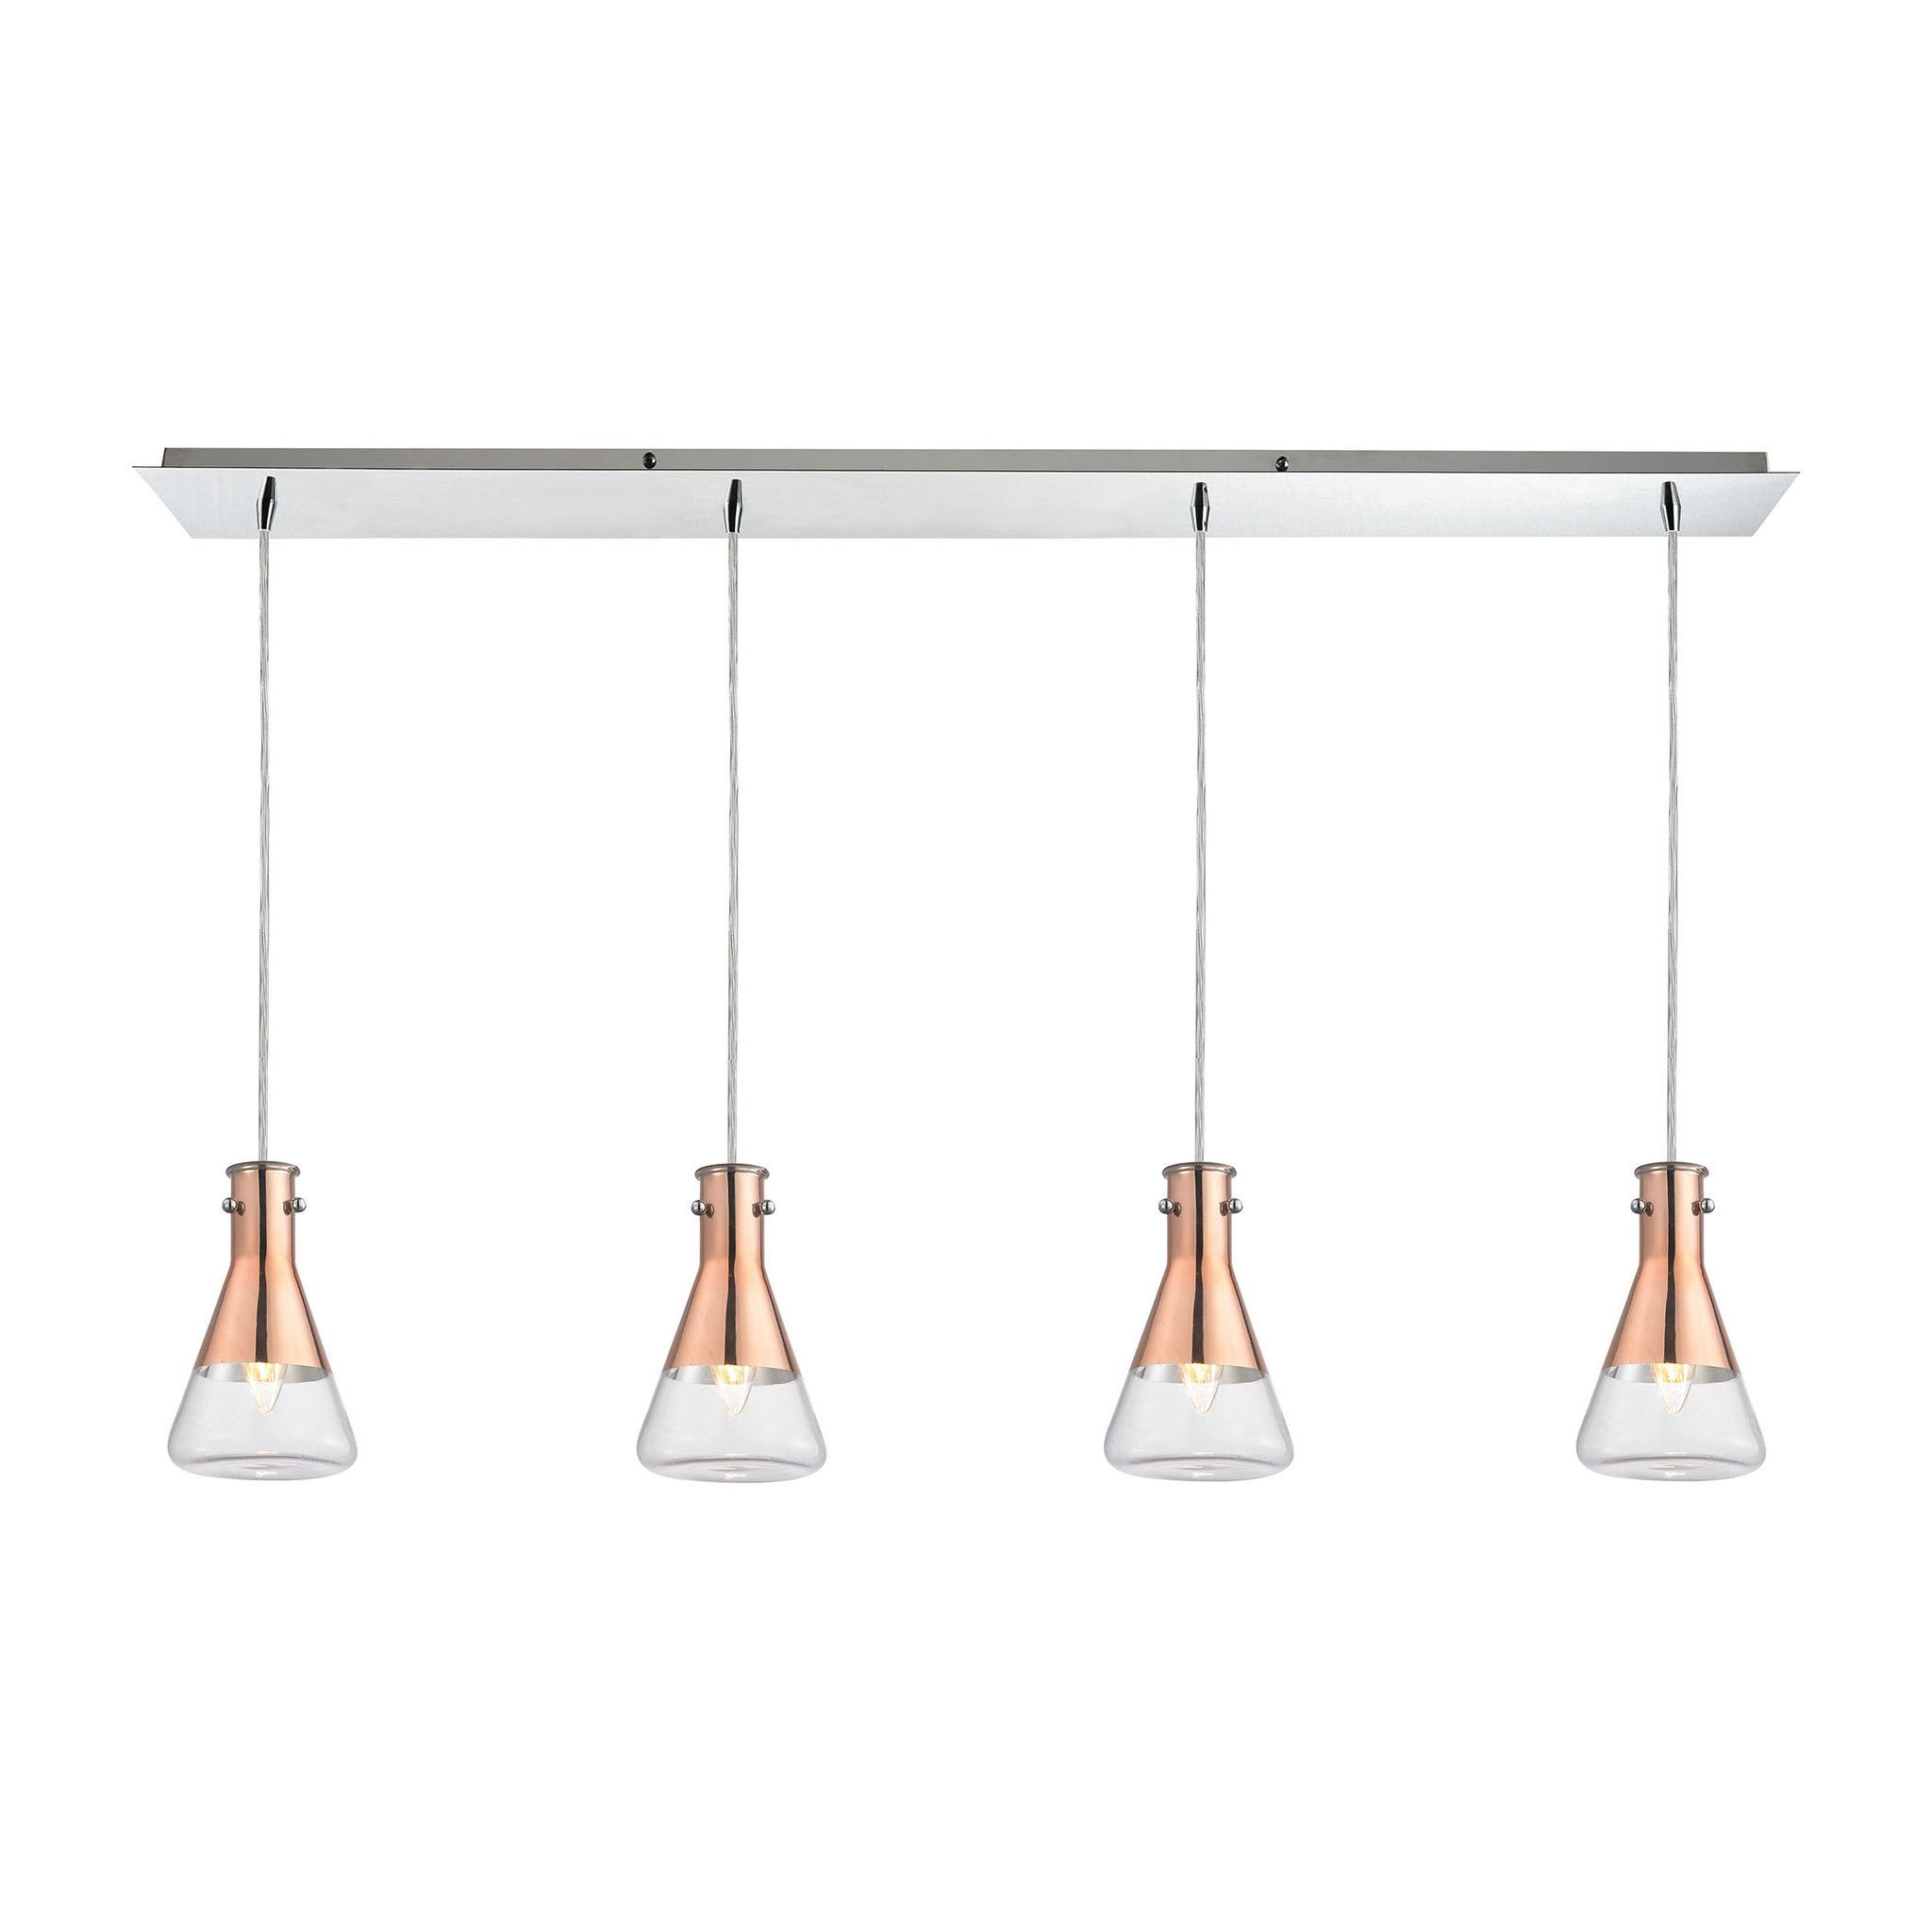 ELK Lighting LP Olean Collection Polished Chrome Finish